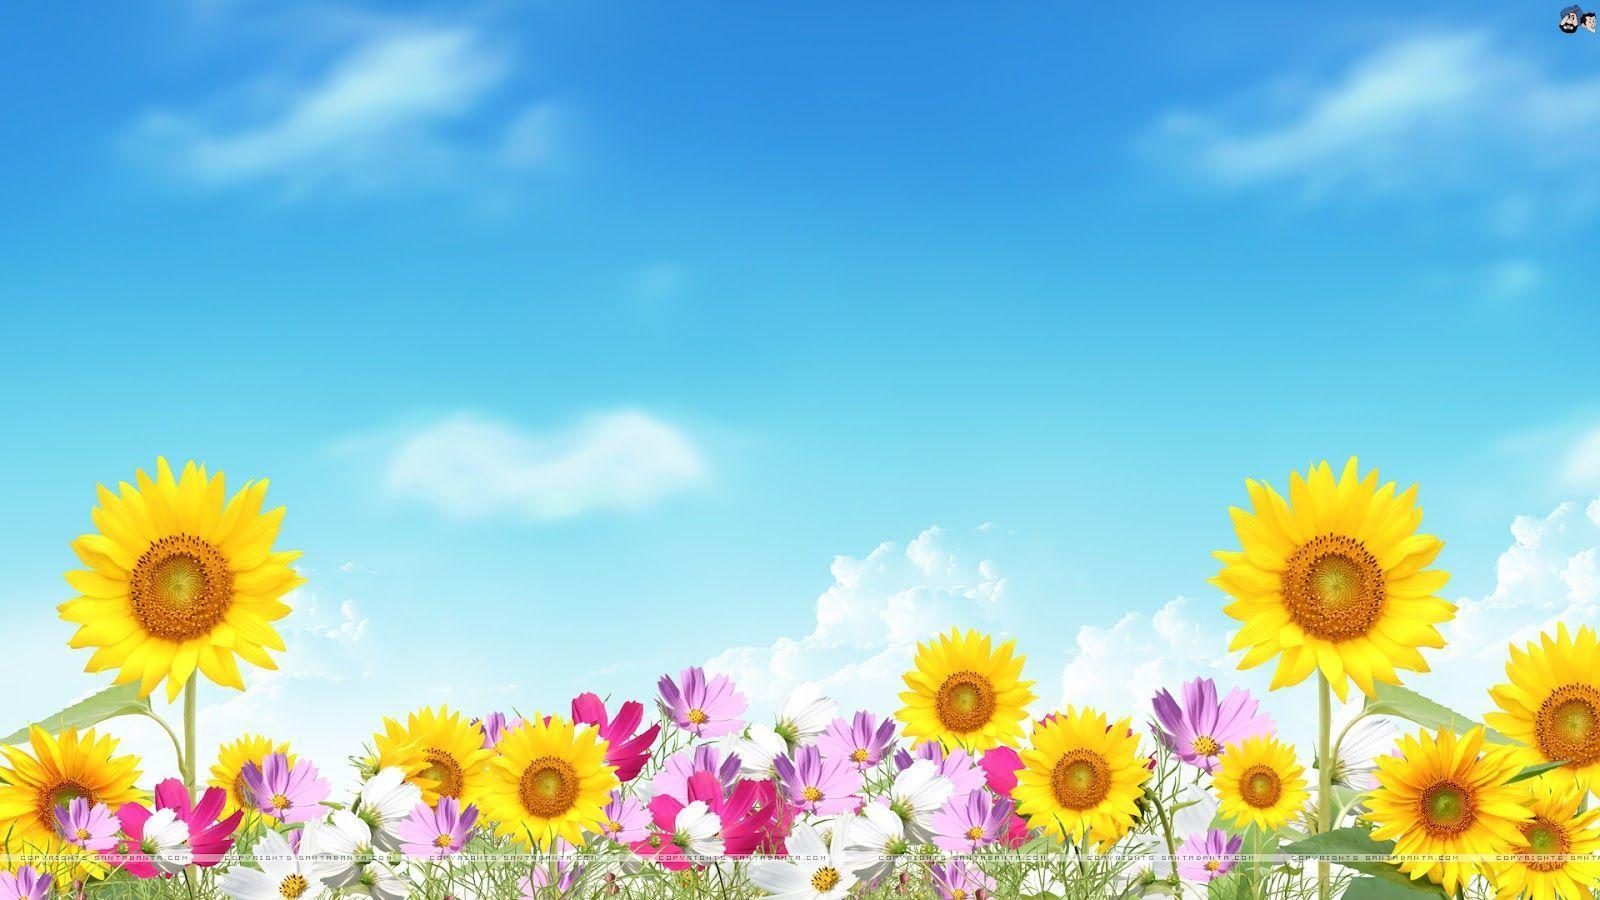 Free Summer Wallpapers For Desktop - Wallpaper Cave